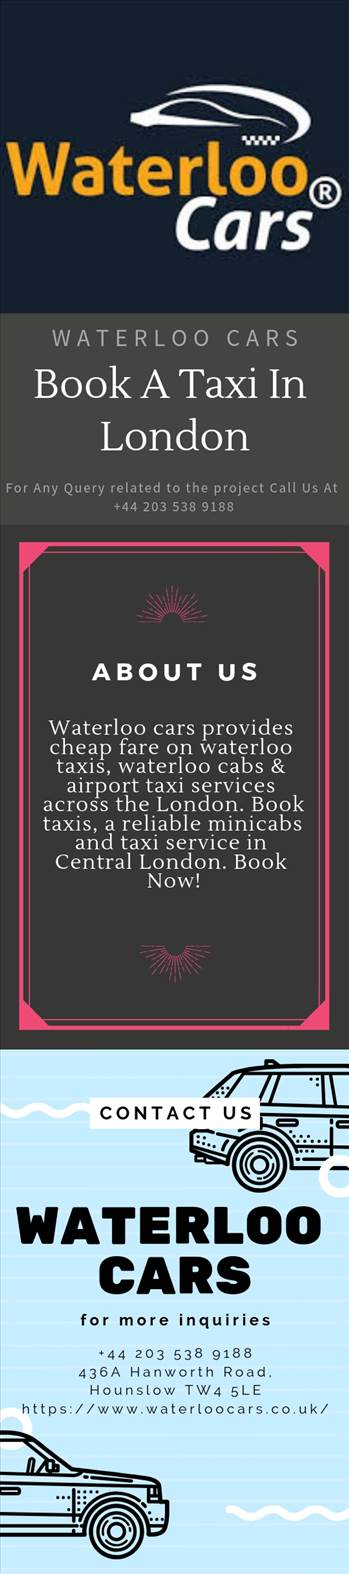 Book A Taxi In London.jpg -